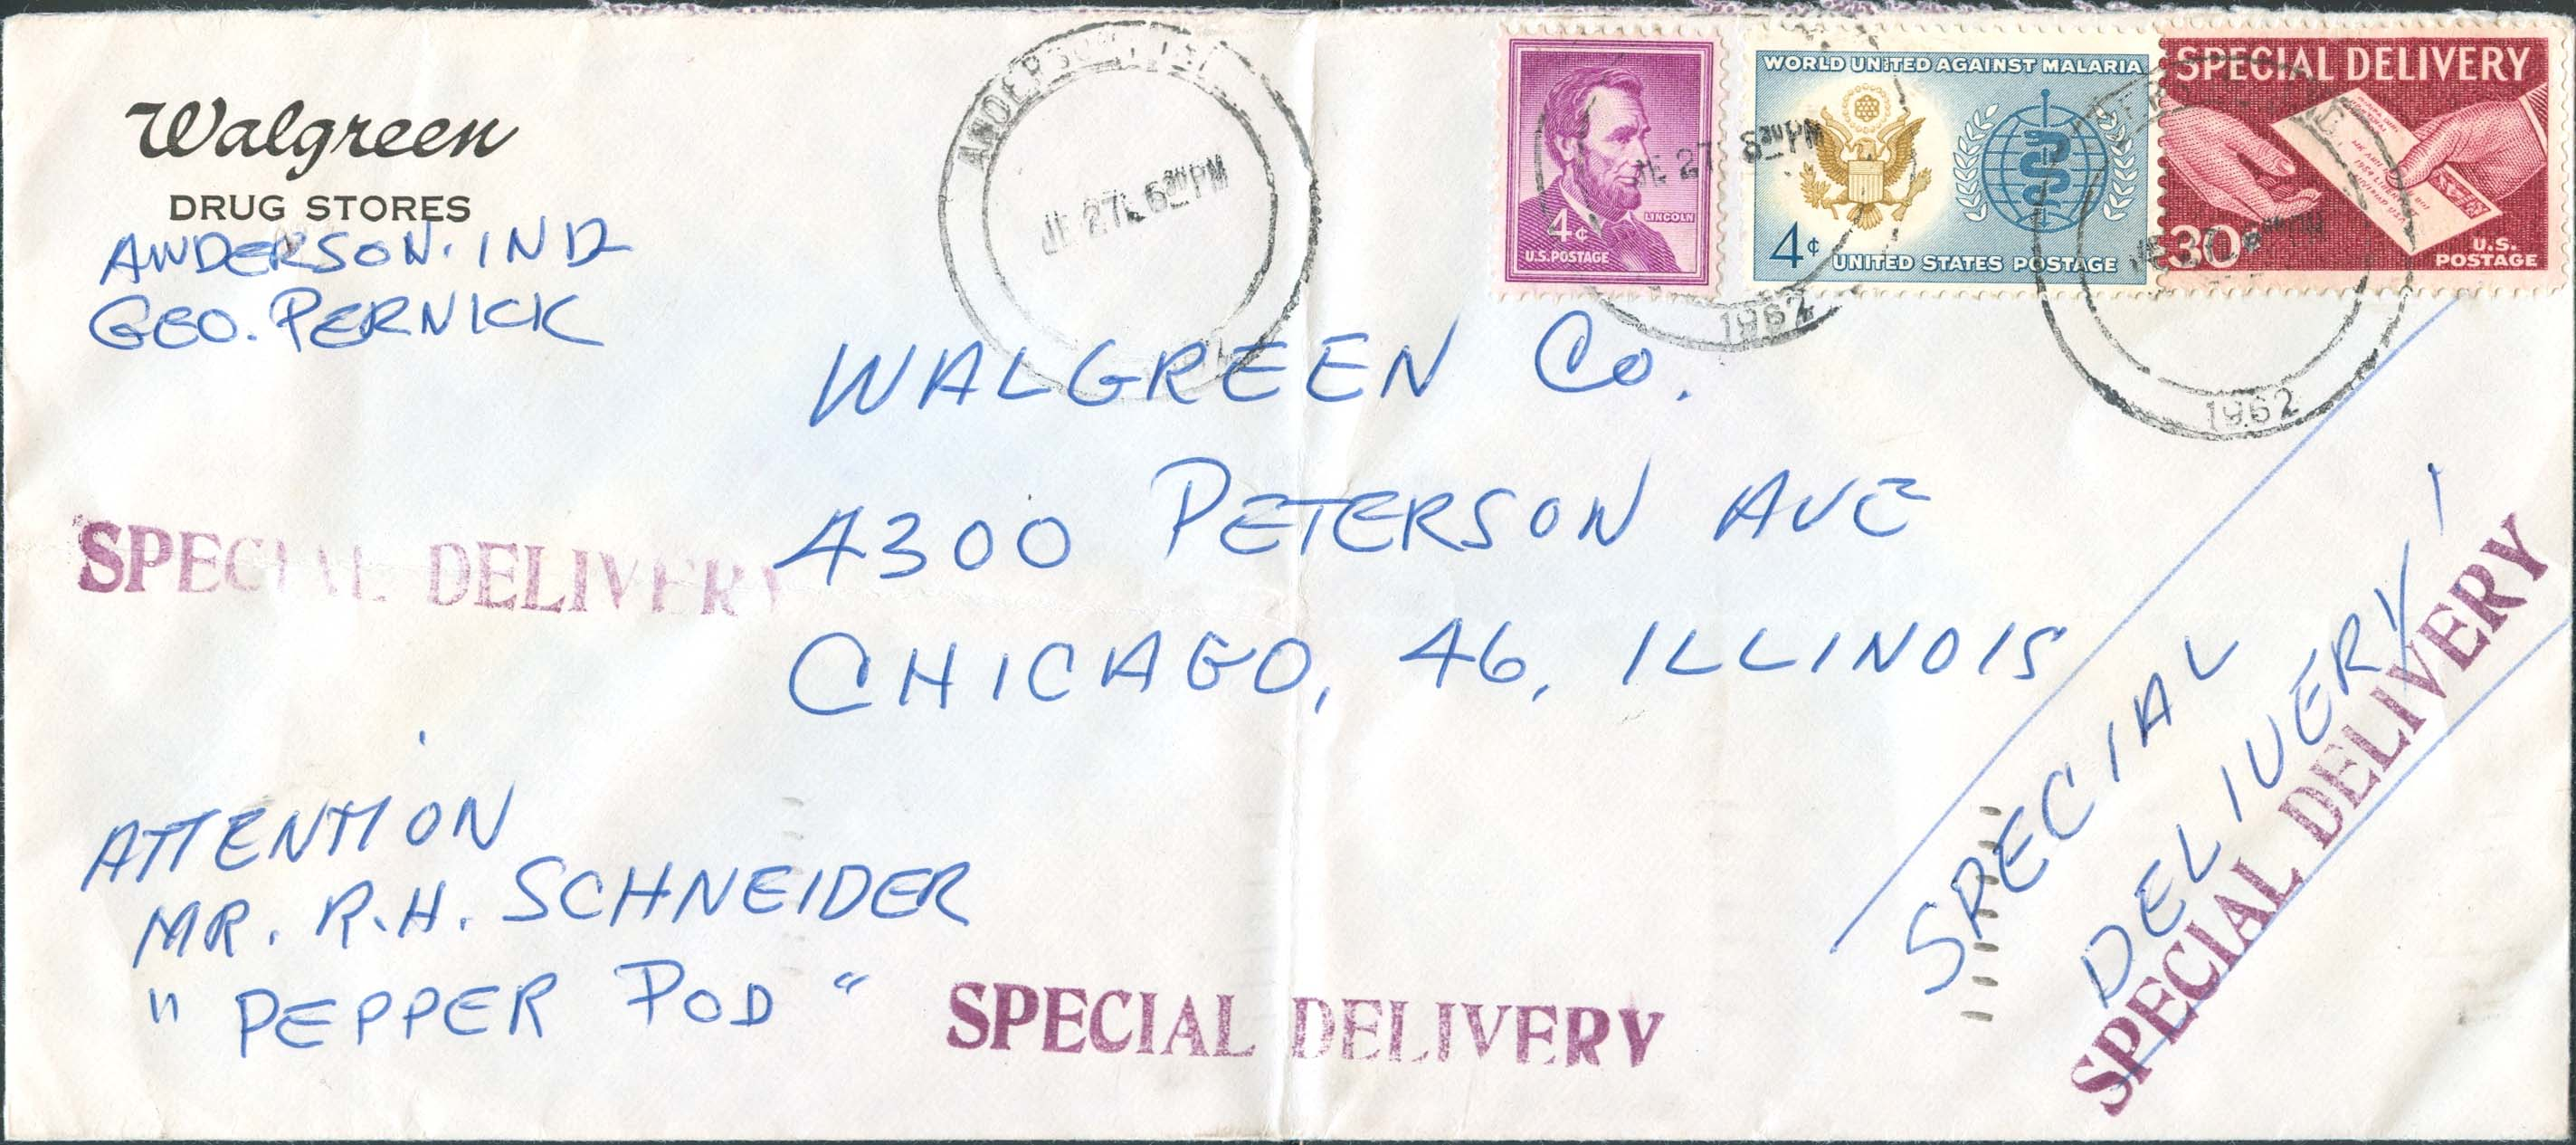 1962, June 27th, PM. Anderson, IN to Chicago, IL. 8¢ paid domestic fee - 2 oz., 30¢ paid the special delivery service - Front